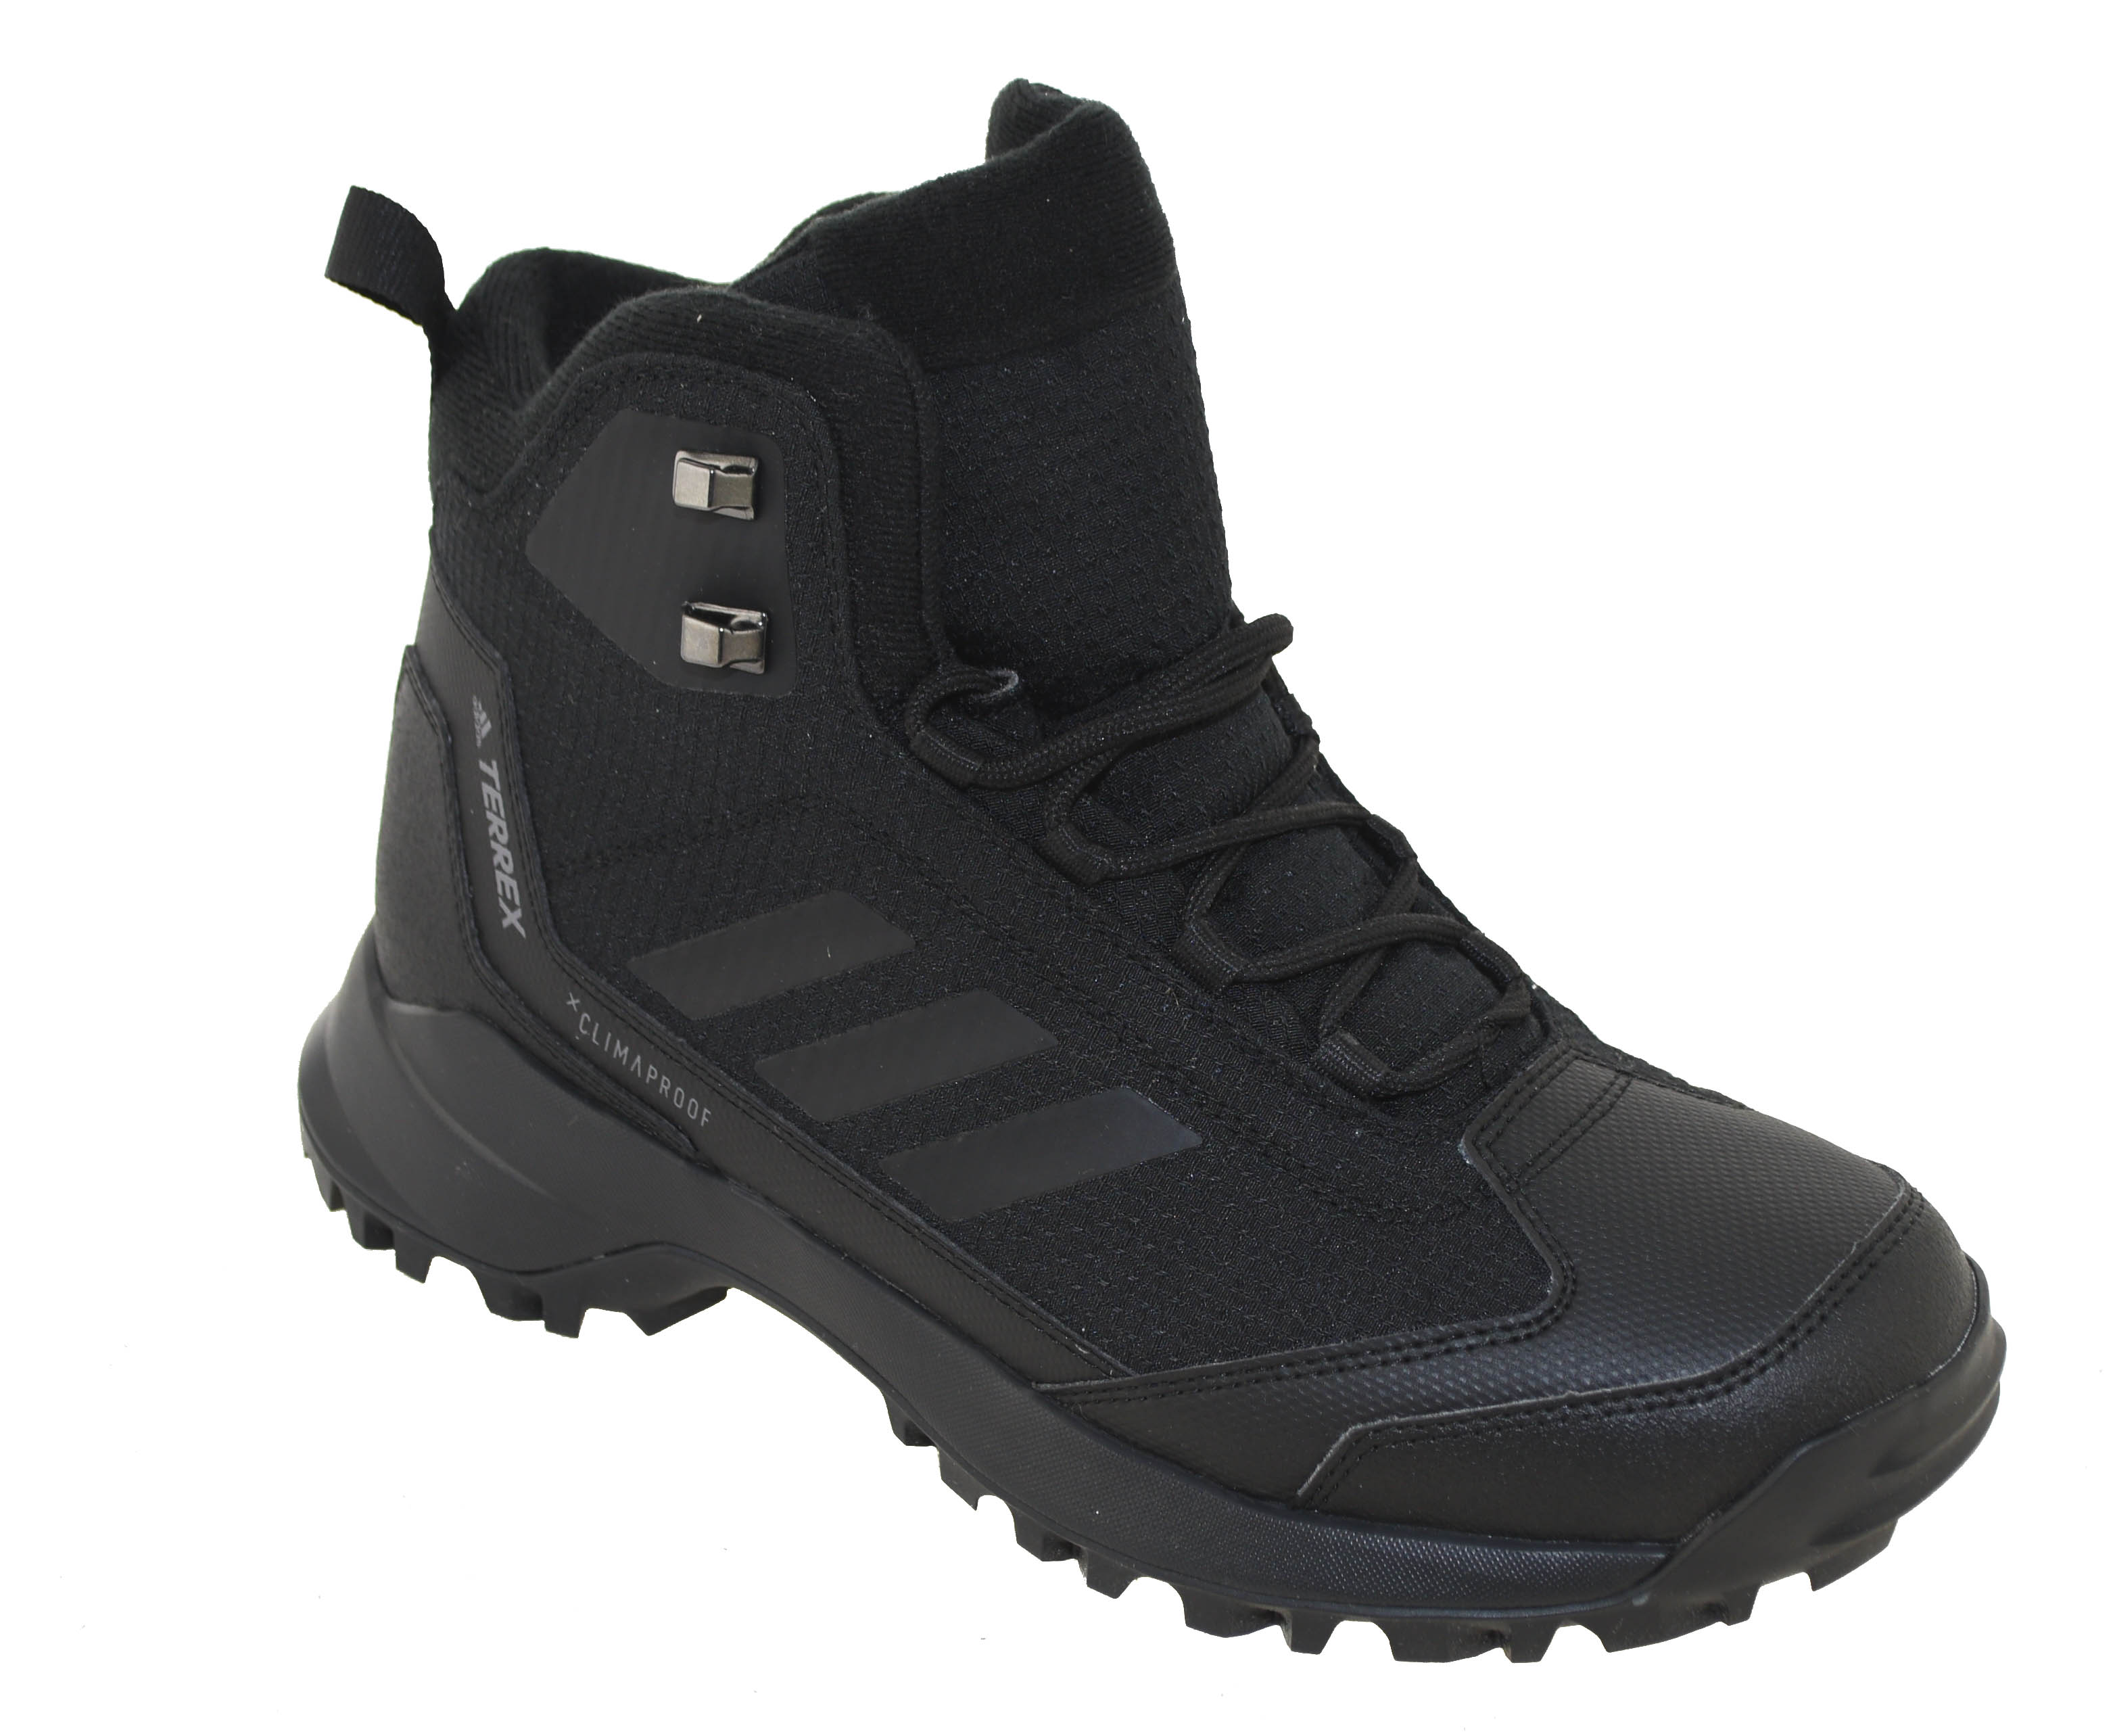 196c01788cc Details about Adidas Men's Waterproof Insulated Heron Mid CP CW Boot Black  Style AC7841